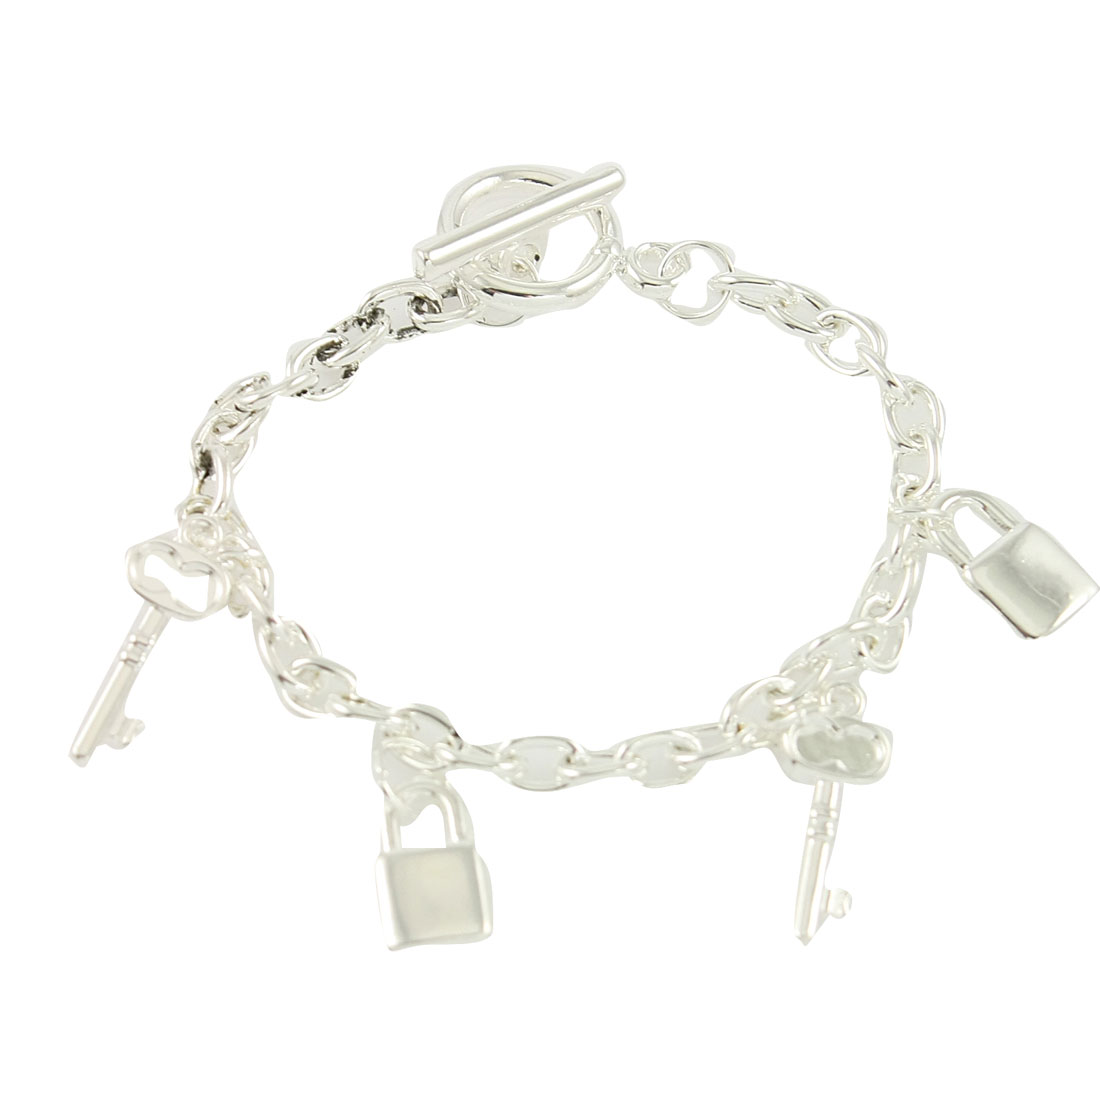 Silver Tone Lock Key Pendant Decor Bracelet Bangle for Ladies